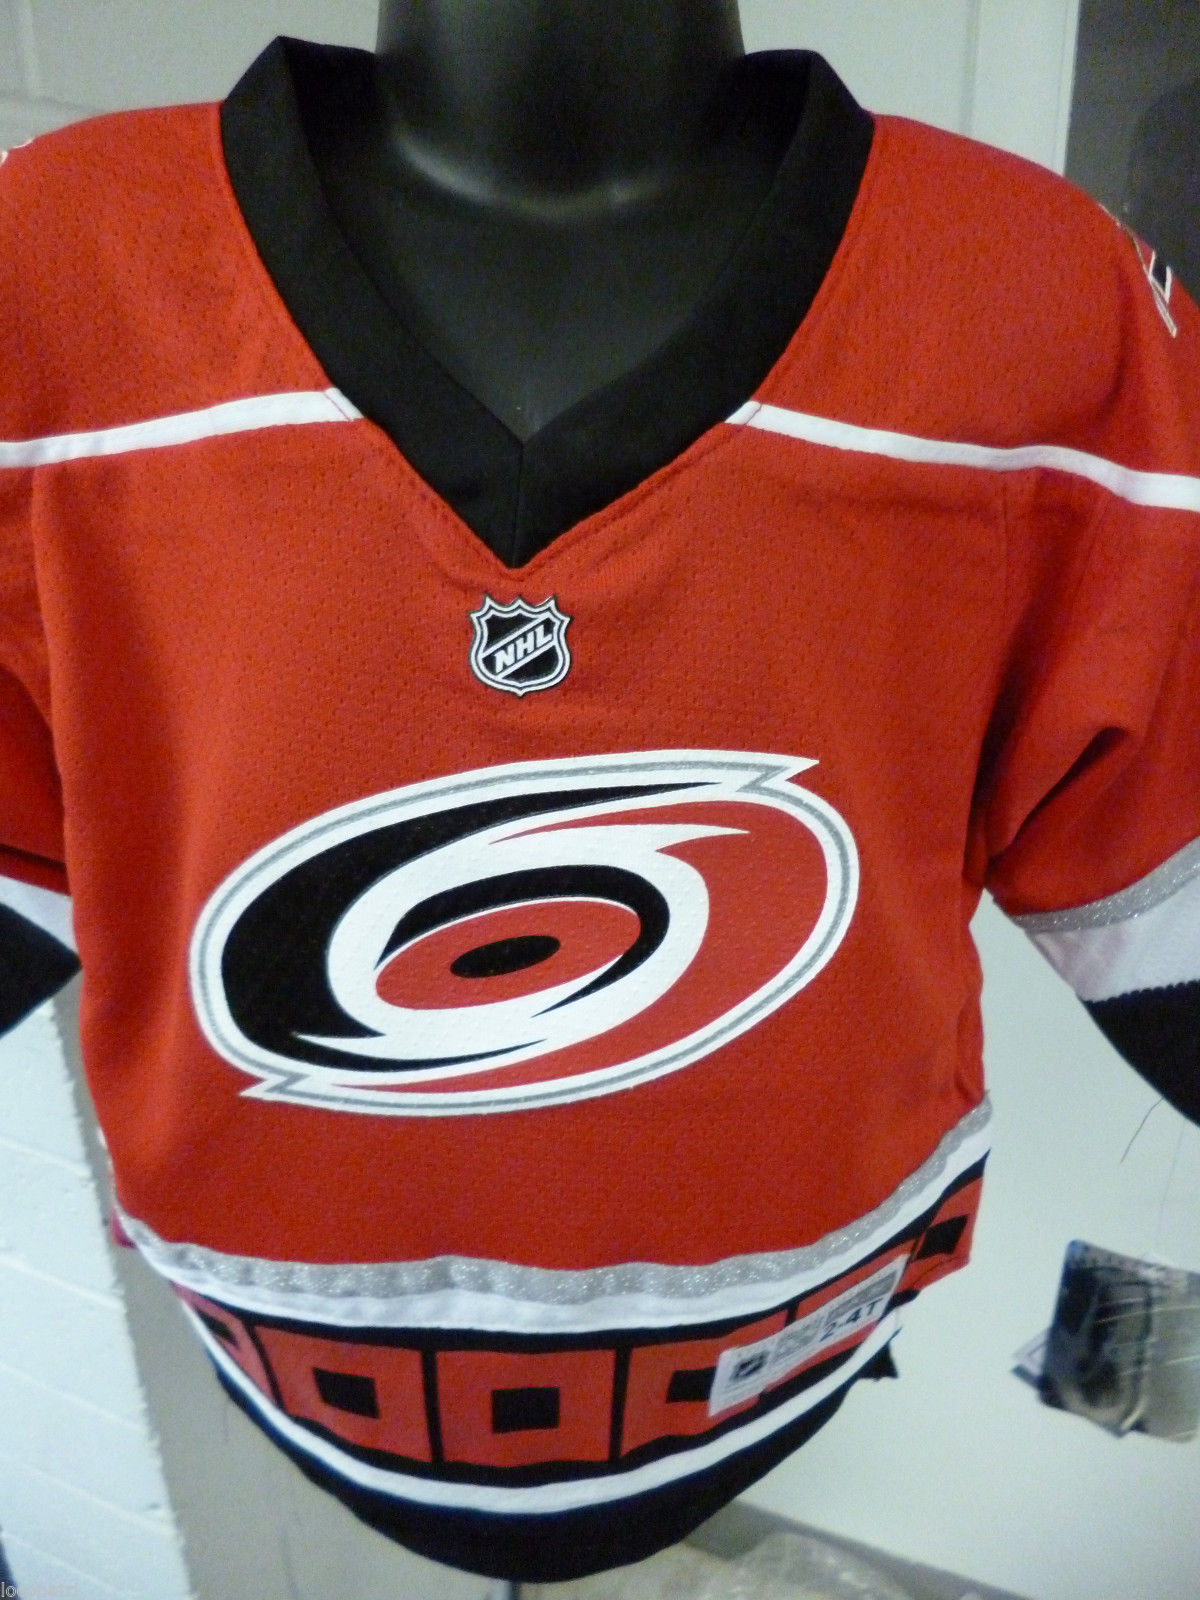 Reebok NHL Carolina Hurricanes Toddler Hockey Jersey NWT $50 2T-4T